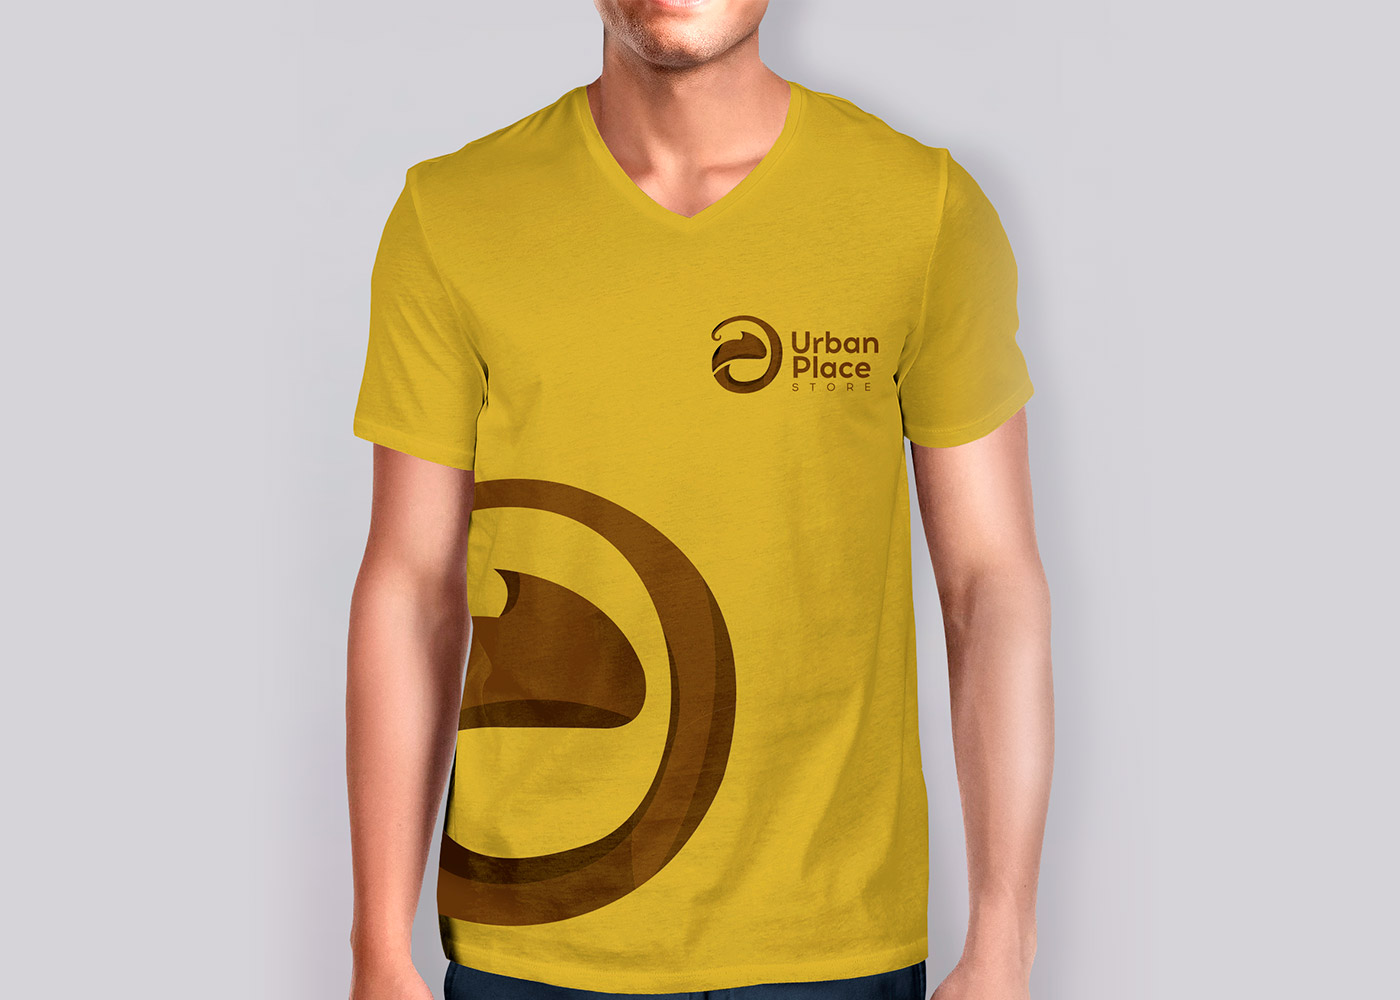 50199a16f9da2 urban-place-shirt - Qroz Design-Digital Solutions